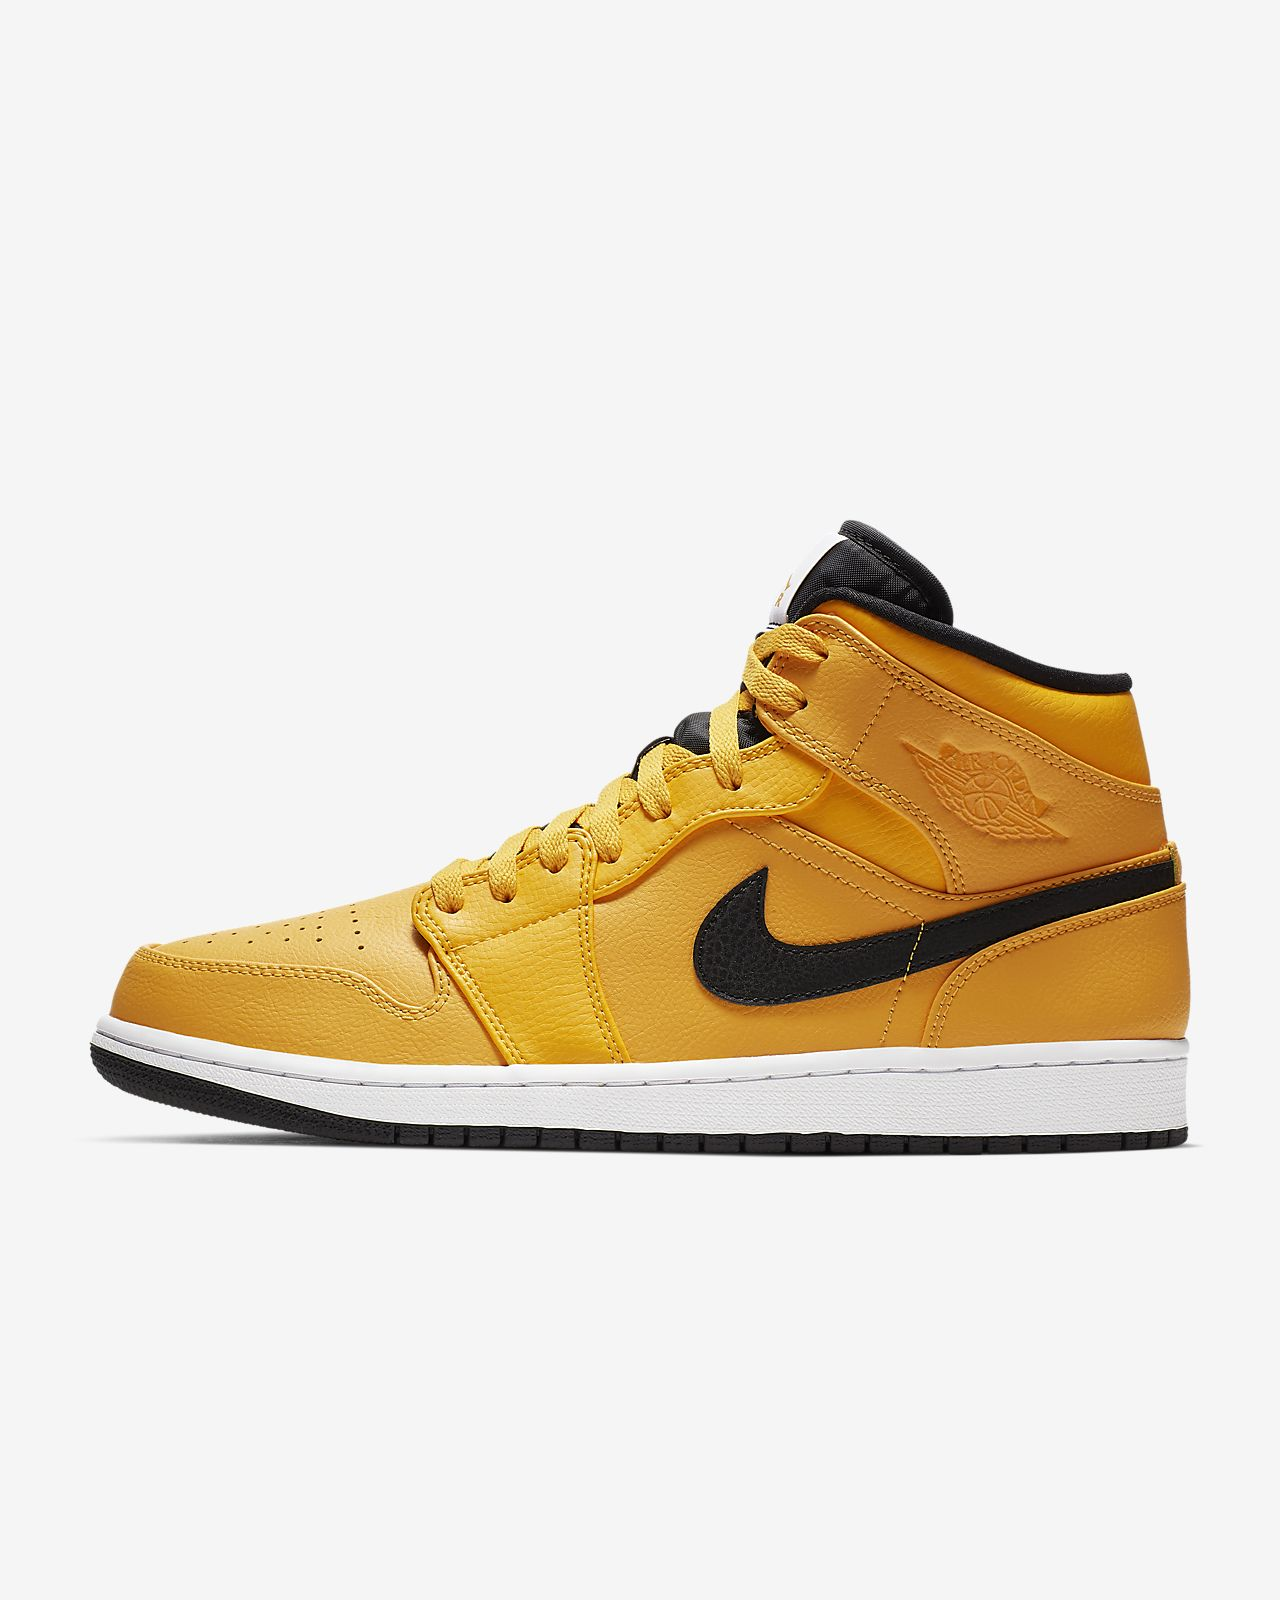 pick up 2e5dc 24020 ... Air Jordan 1 Mid Men s Shoe